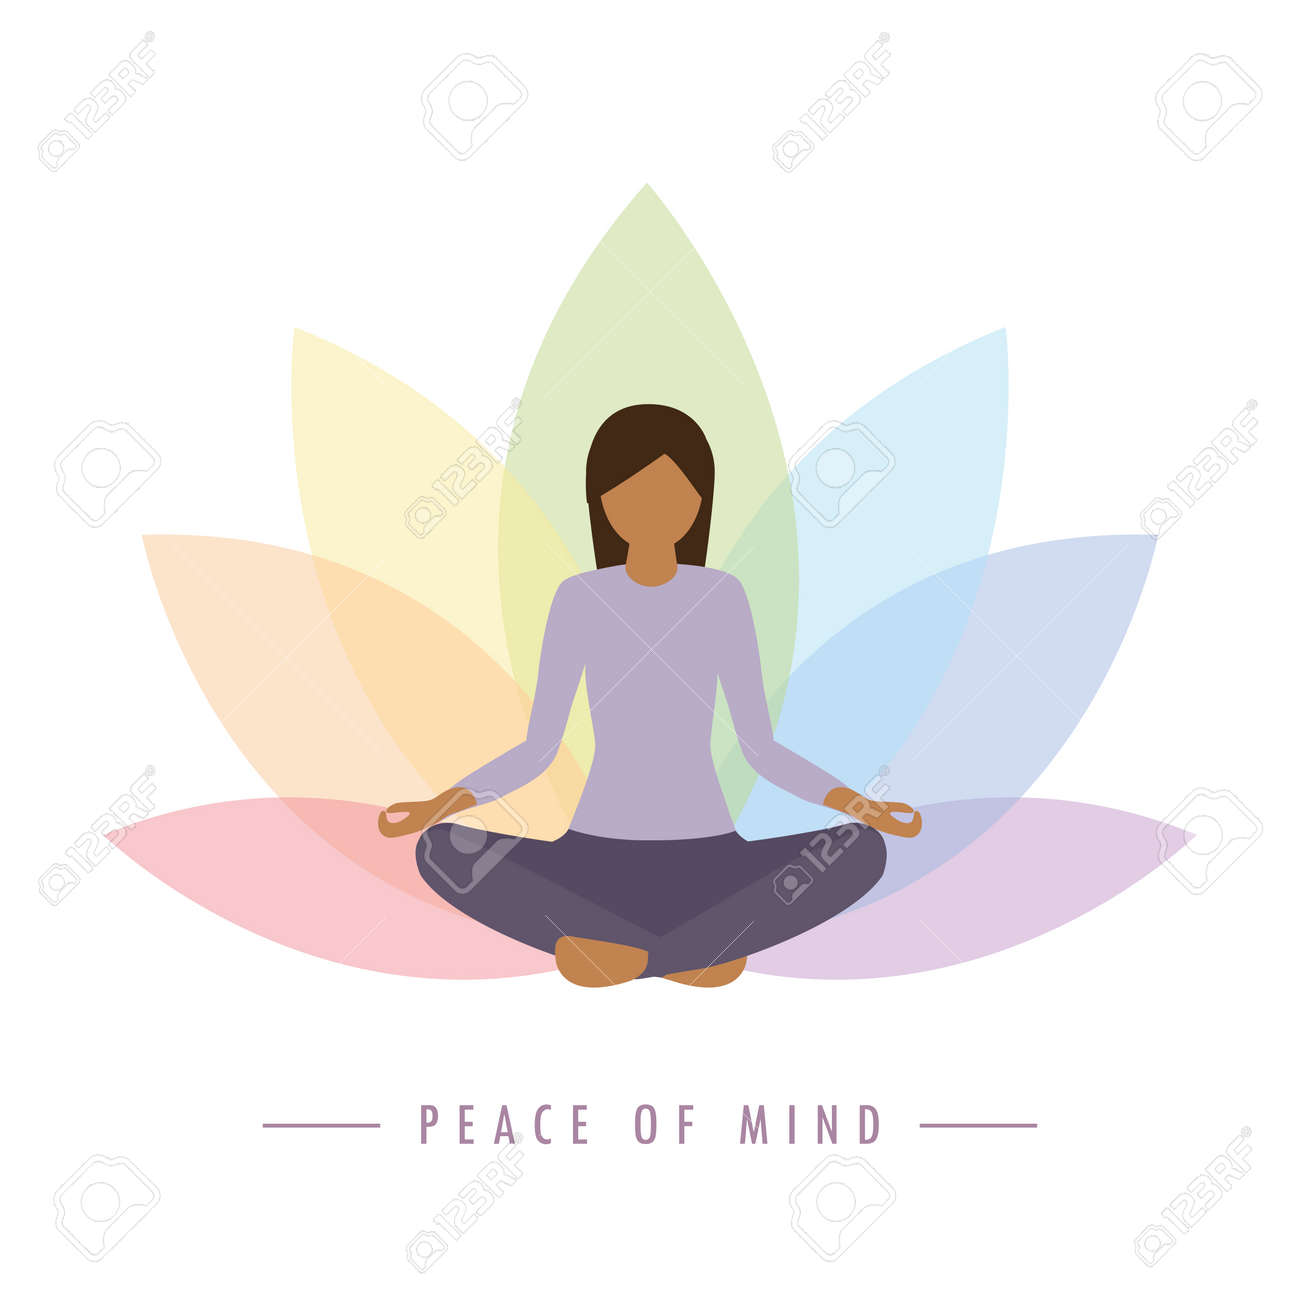 yoga girl on colorful lotus flower background peace of mind - 167505119